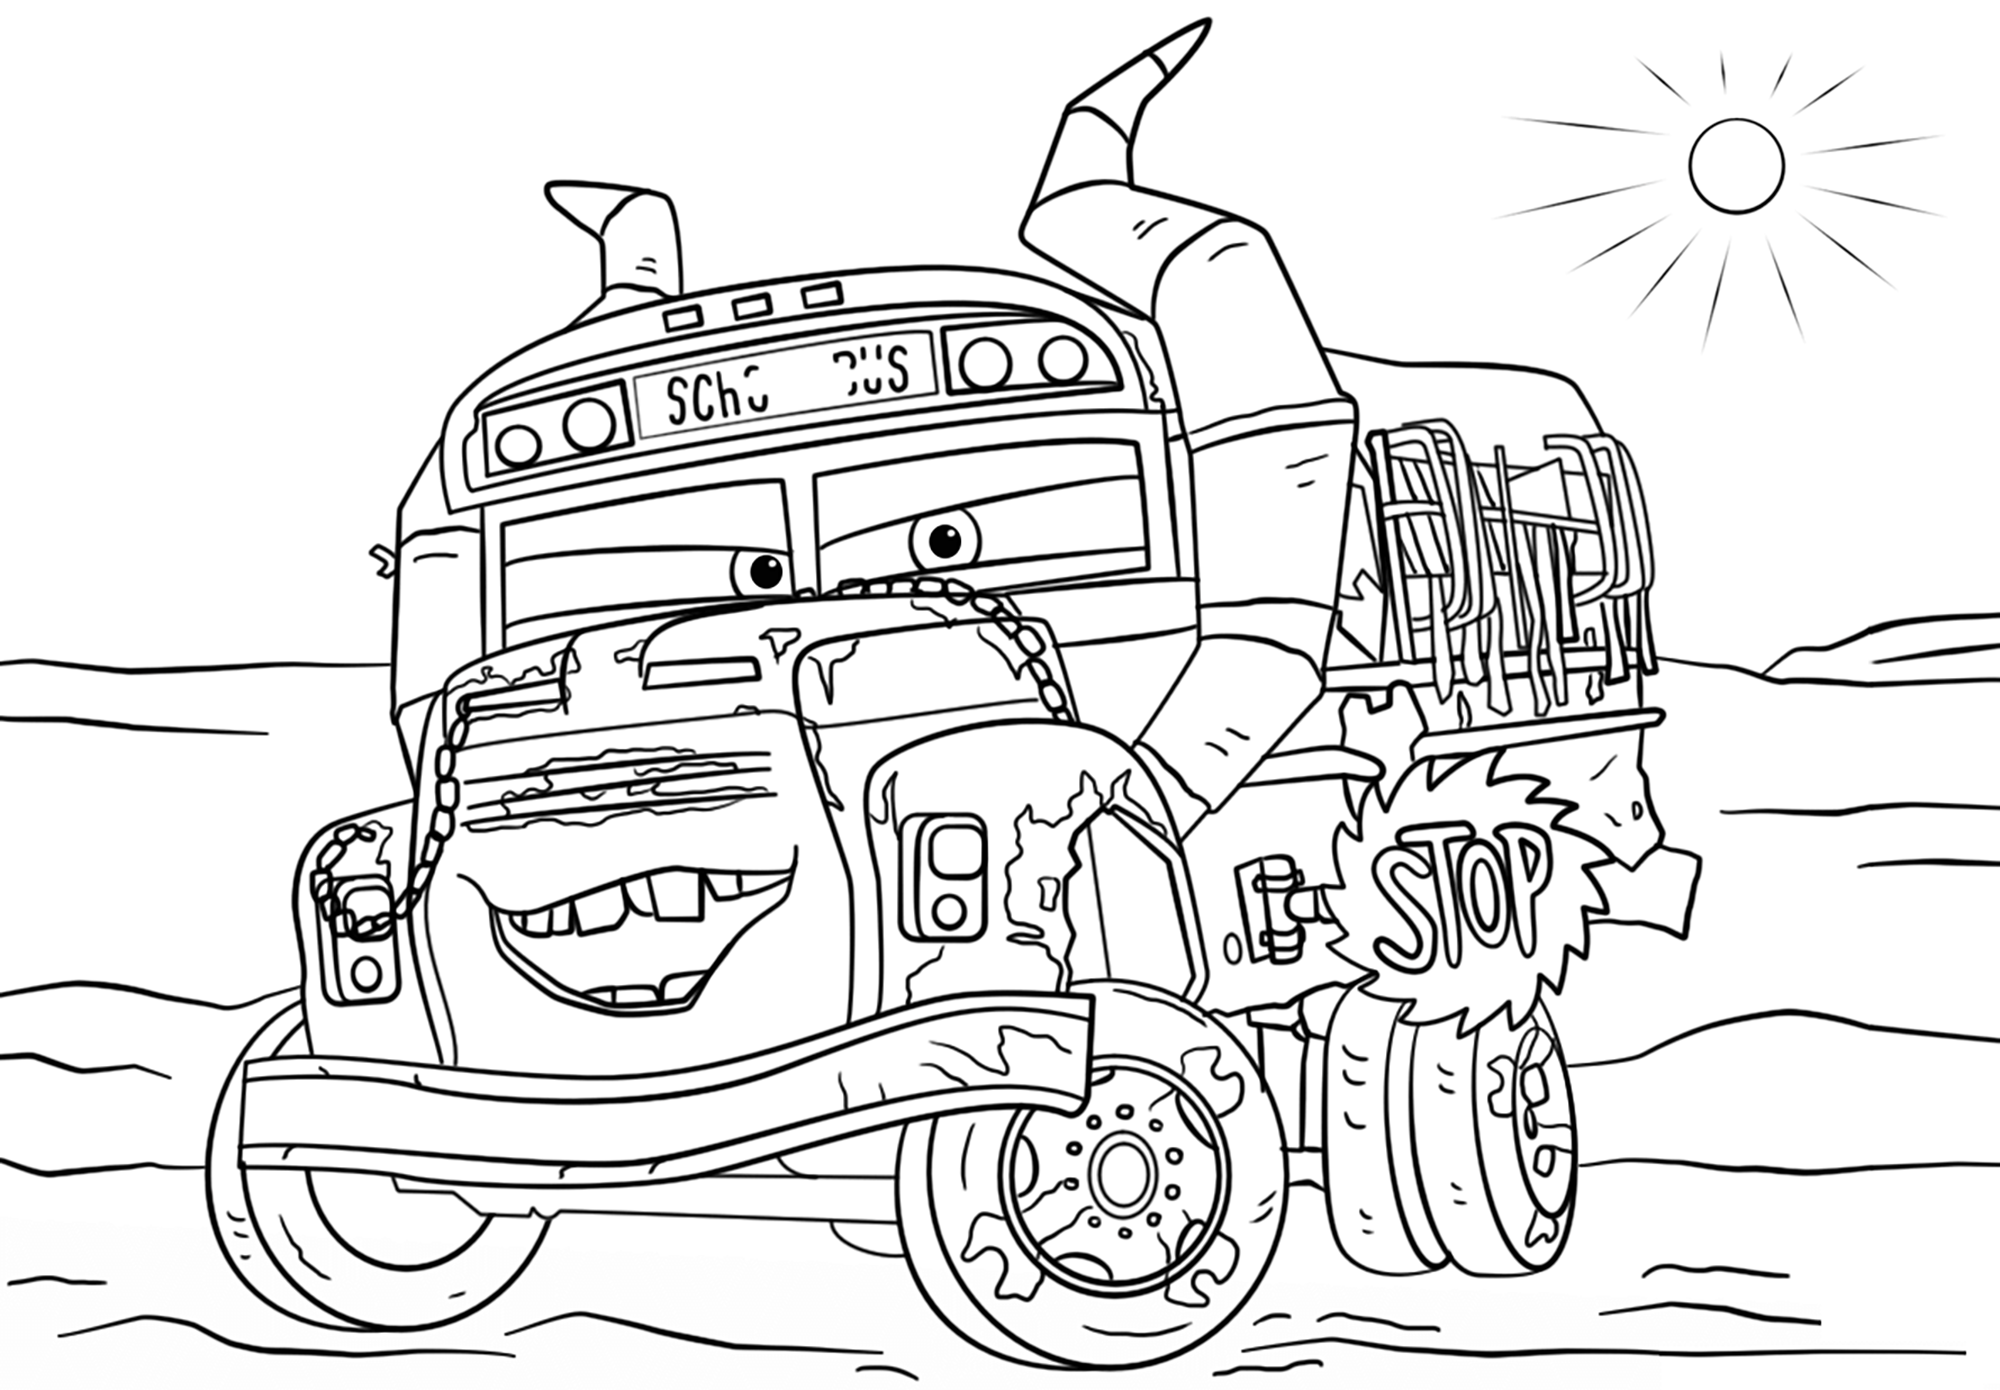 colouring in pictures of cars car coloring pages free download in of cars pictures colouring